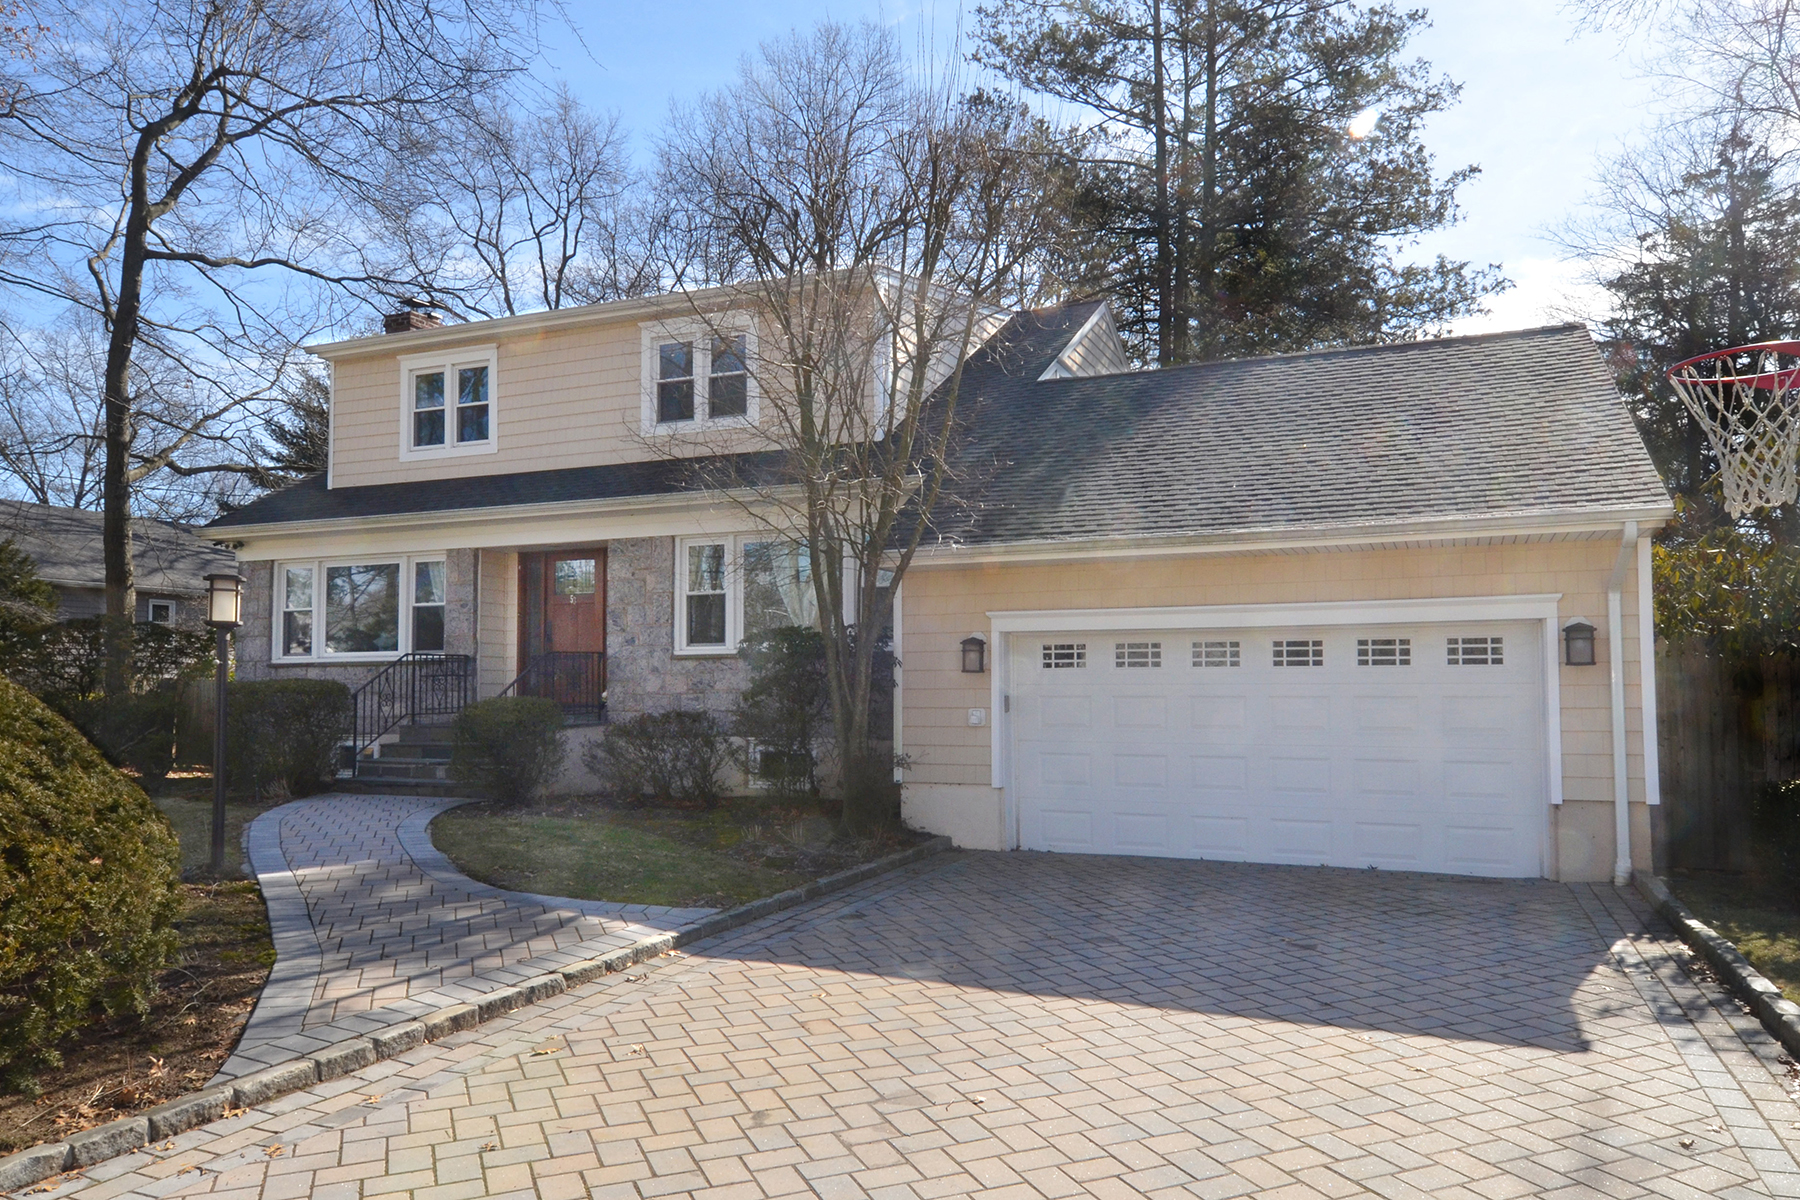 Single Family Home for Sale at Mid-Century Classic 53 Seton Drive New Rochelle, New York 10804 United States